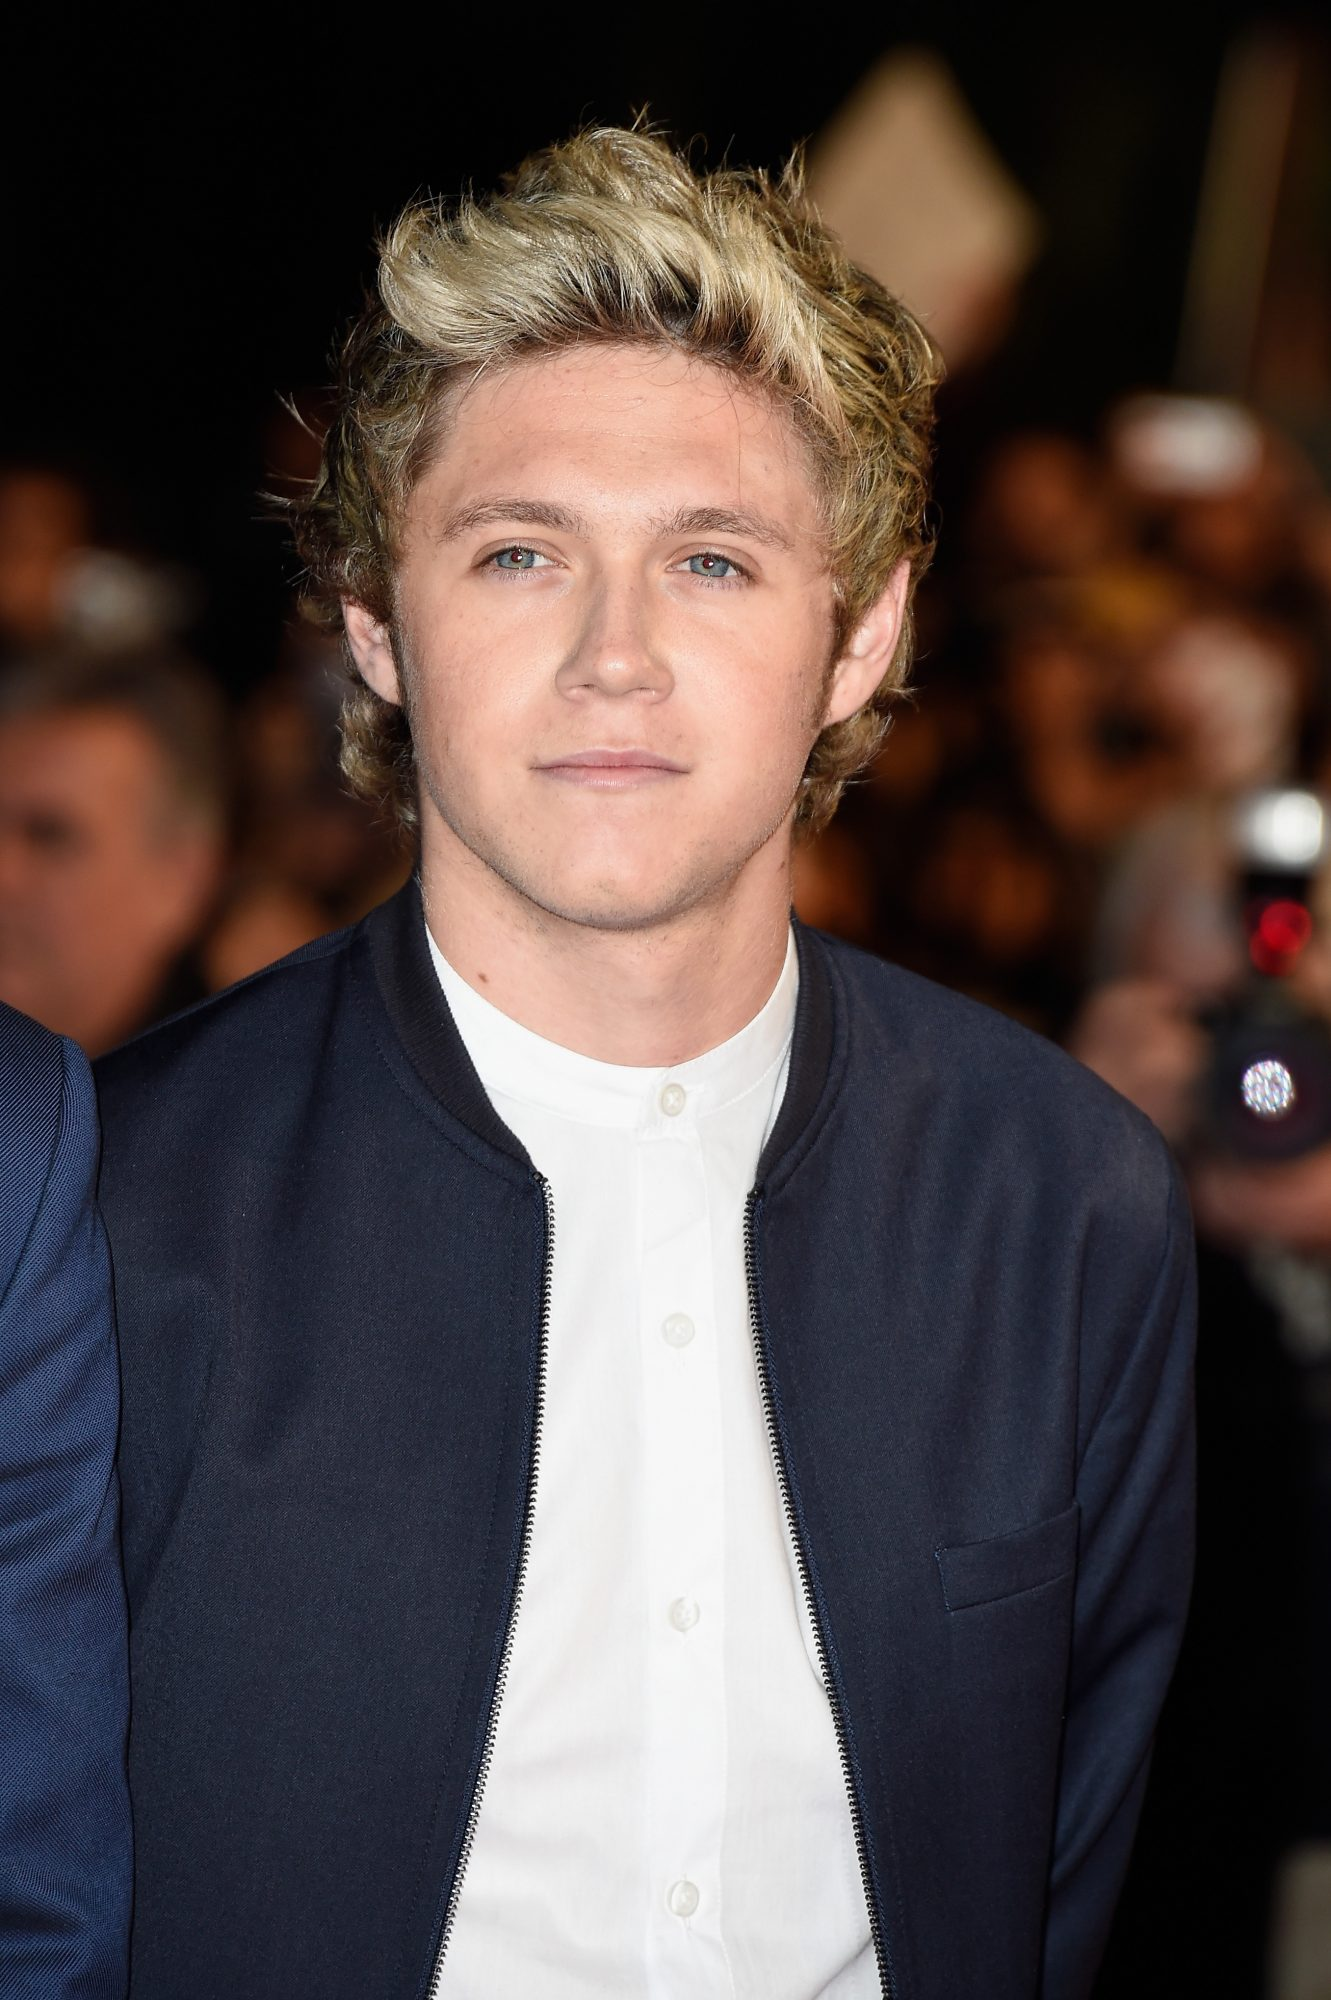 CANNES, FRANCE - DECEMBER 13:  One Direction member Niall Horan attends the NRJ Music Awards at Palais des Festivals on December 13, 2014 in Cannes, France.  (Photo by Pascal Le Segretain/Getty Images)